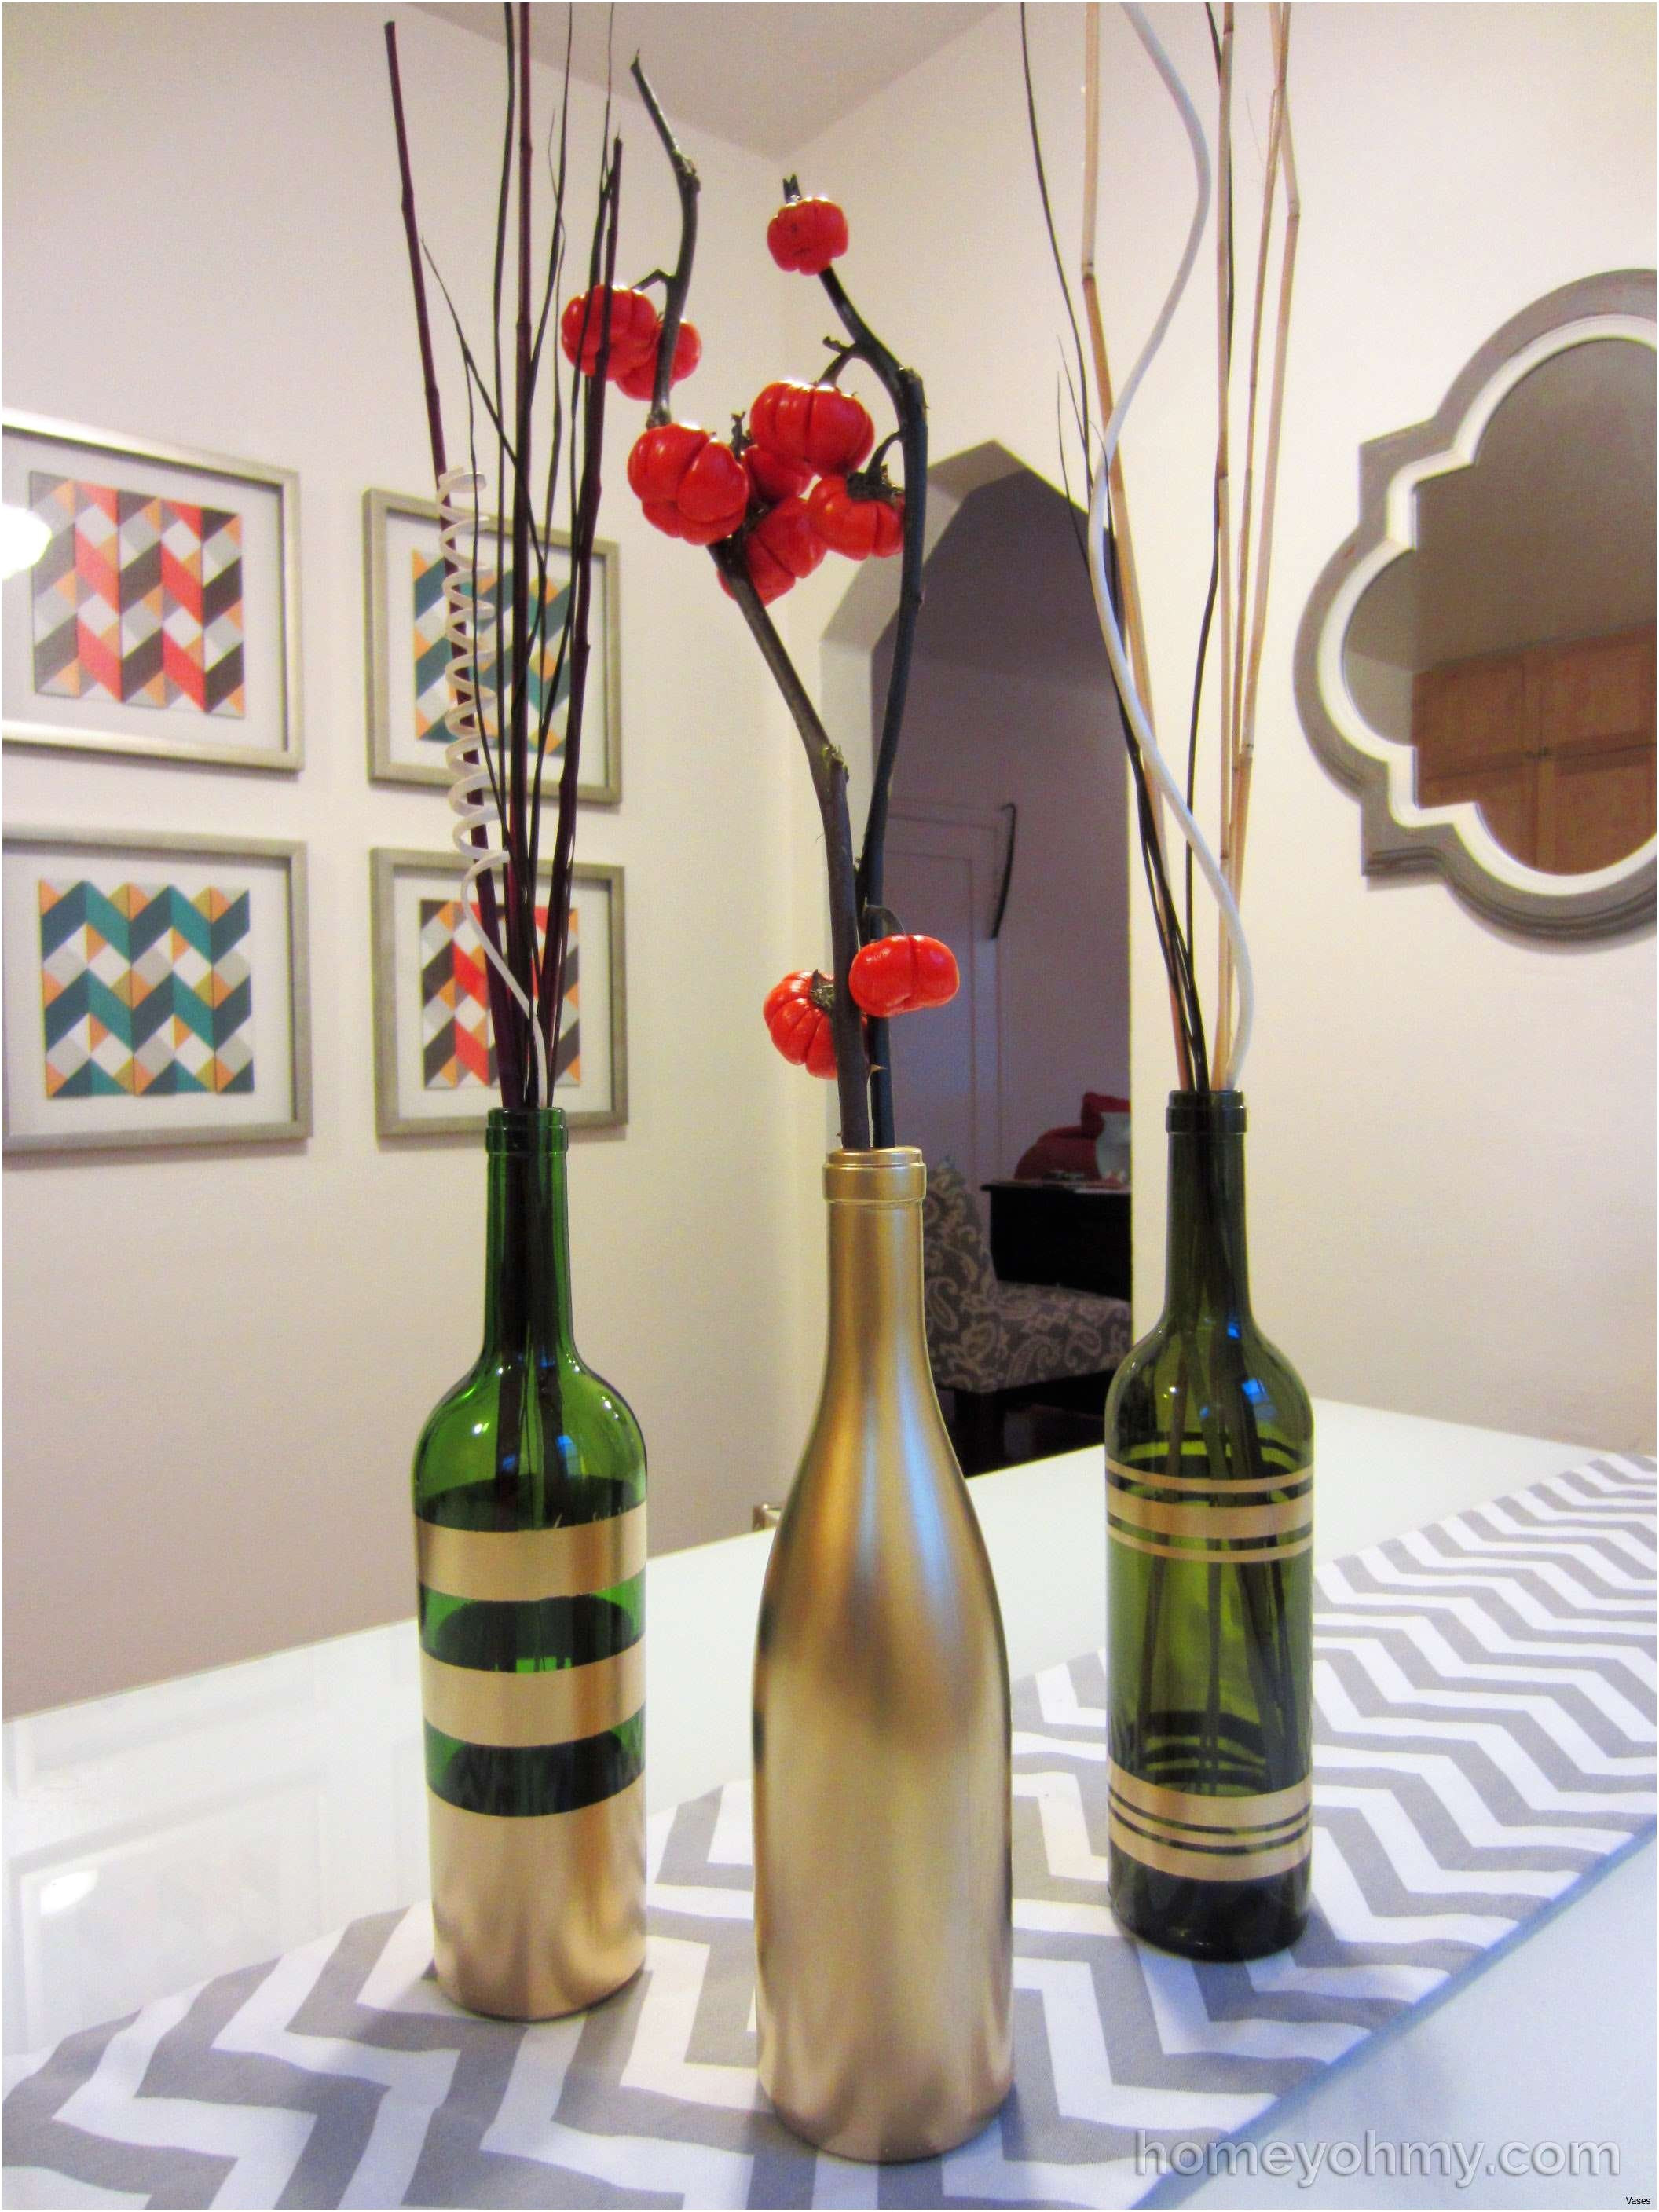 Oversized Glass Vase Of H Et H Home Impressionnant Photos H Vases Artificial Flower Throughout H Et H Home A‰lagant Photos Best New Home Gifts Fascinating H Vases How to Paint